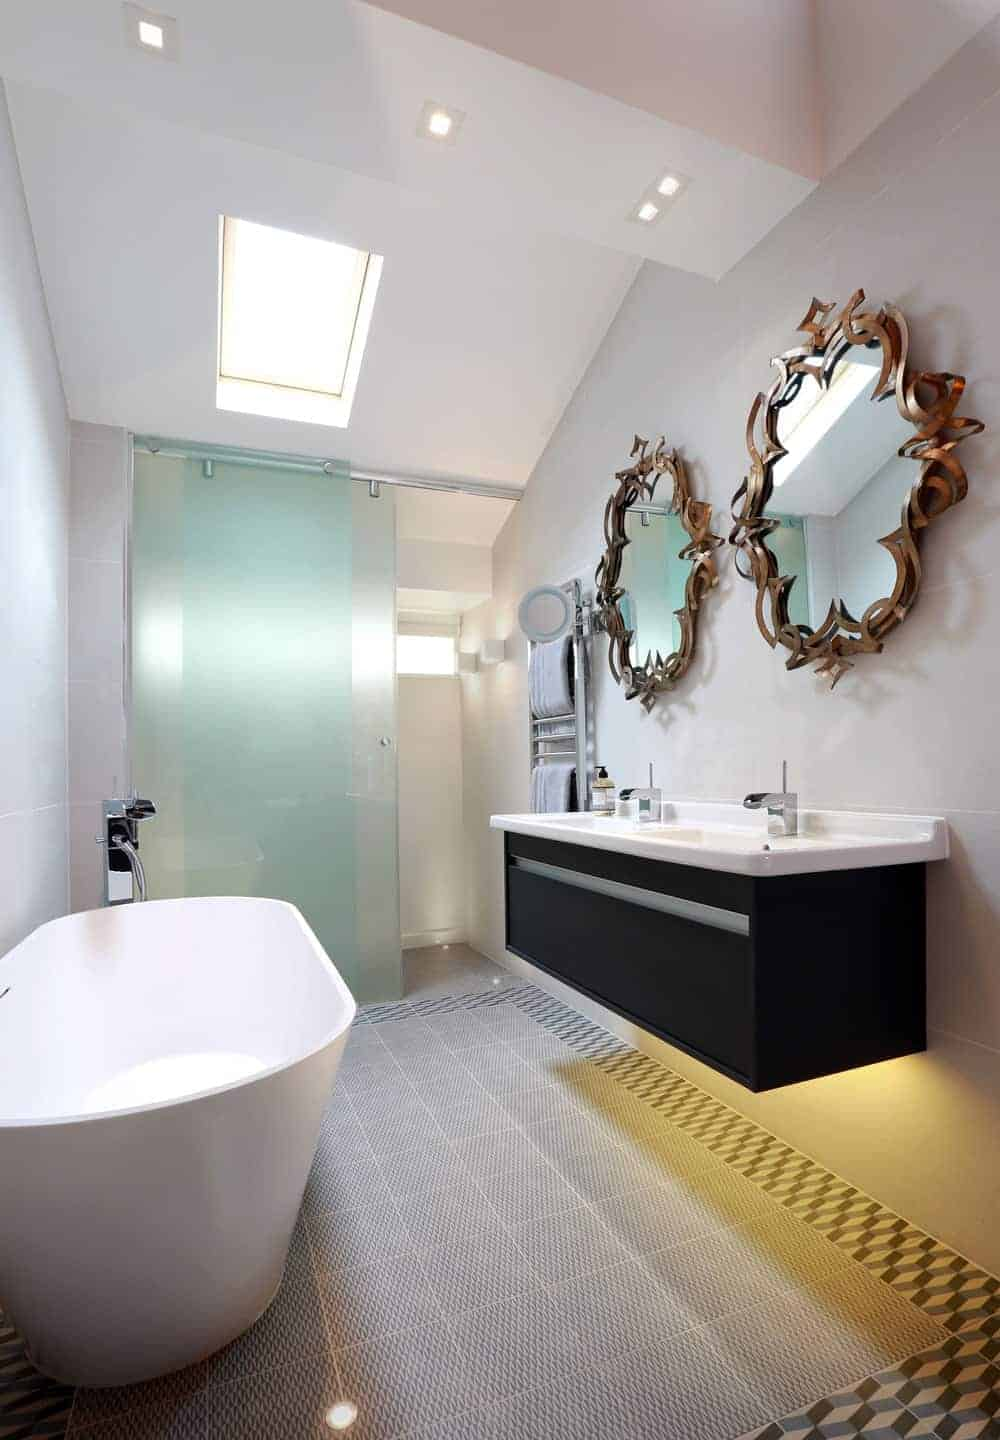 This small bathroom maximizes its small floor area with an elliptical freestanding tub across from the floating black vanity that has a white countertop topped with a couple of artistic brass-framed mirrors.